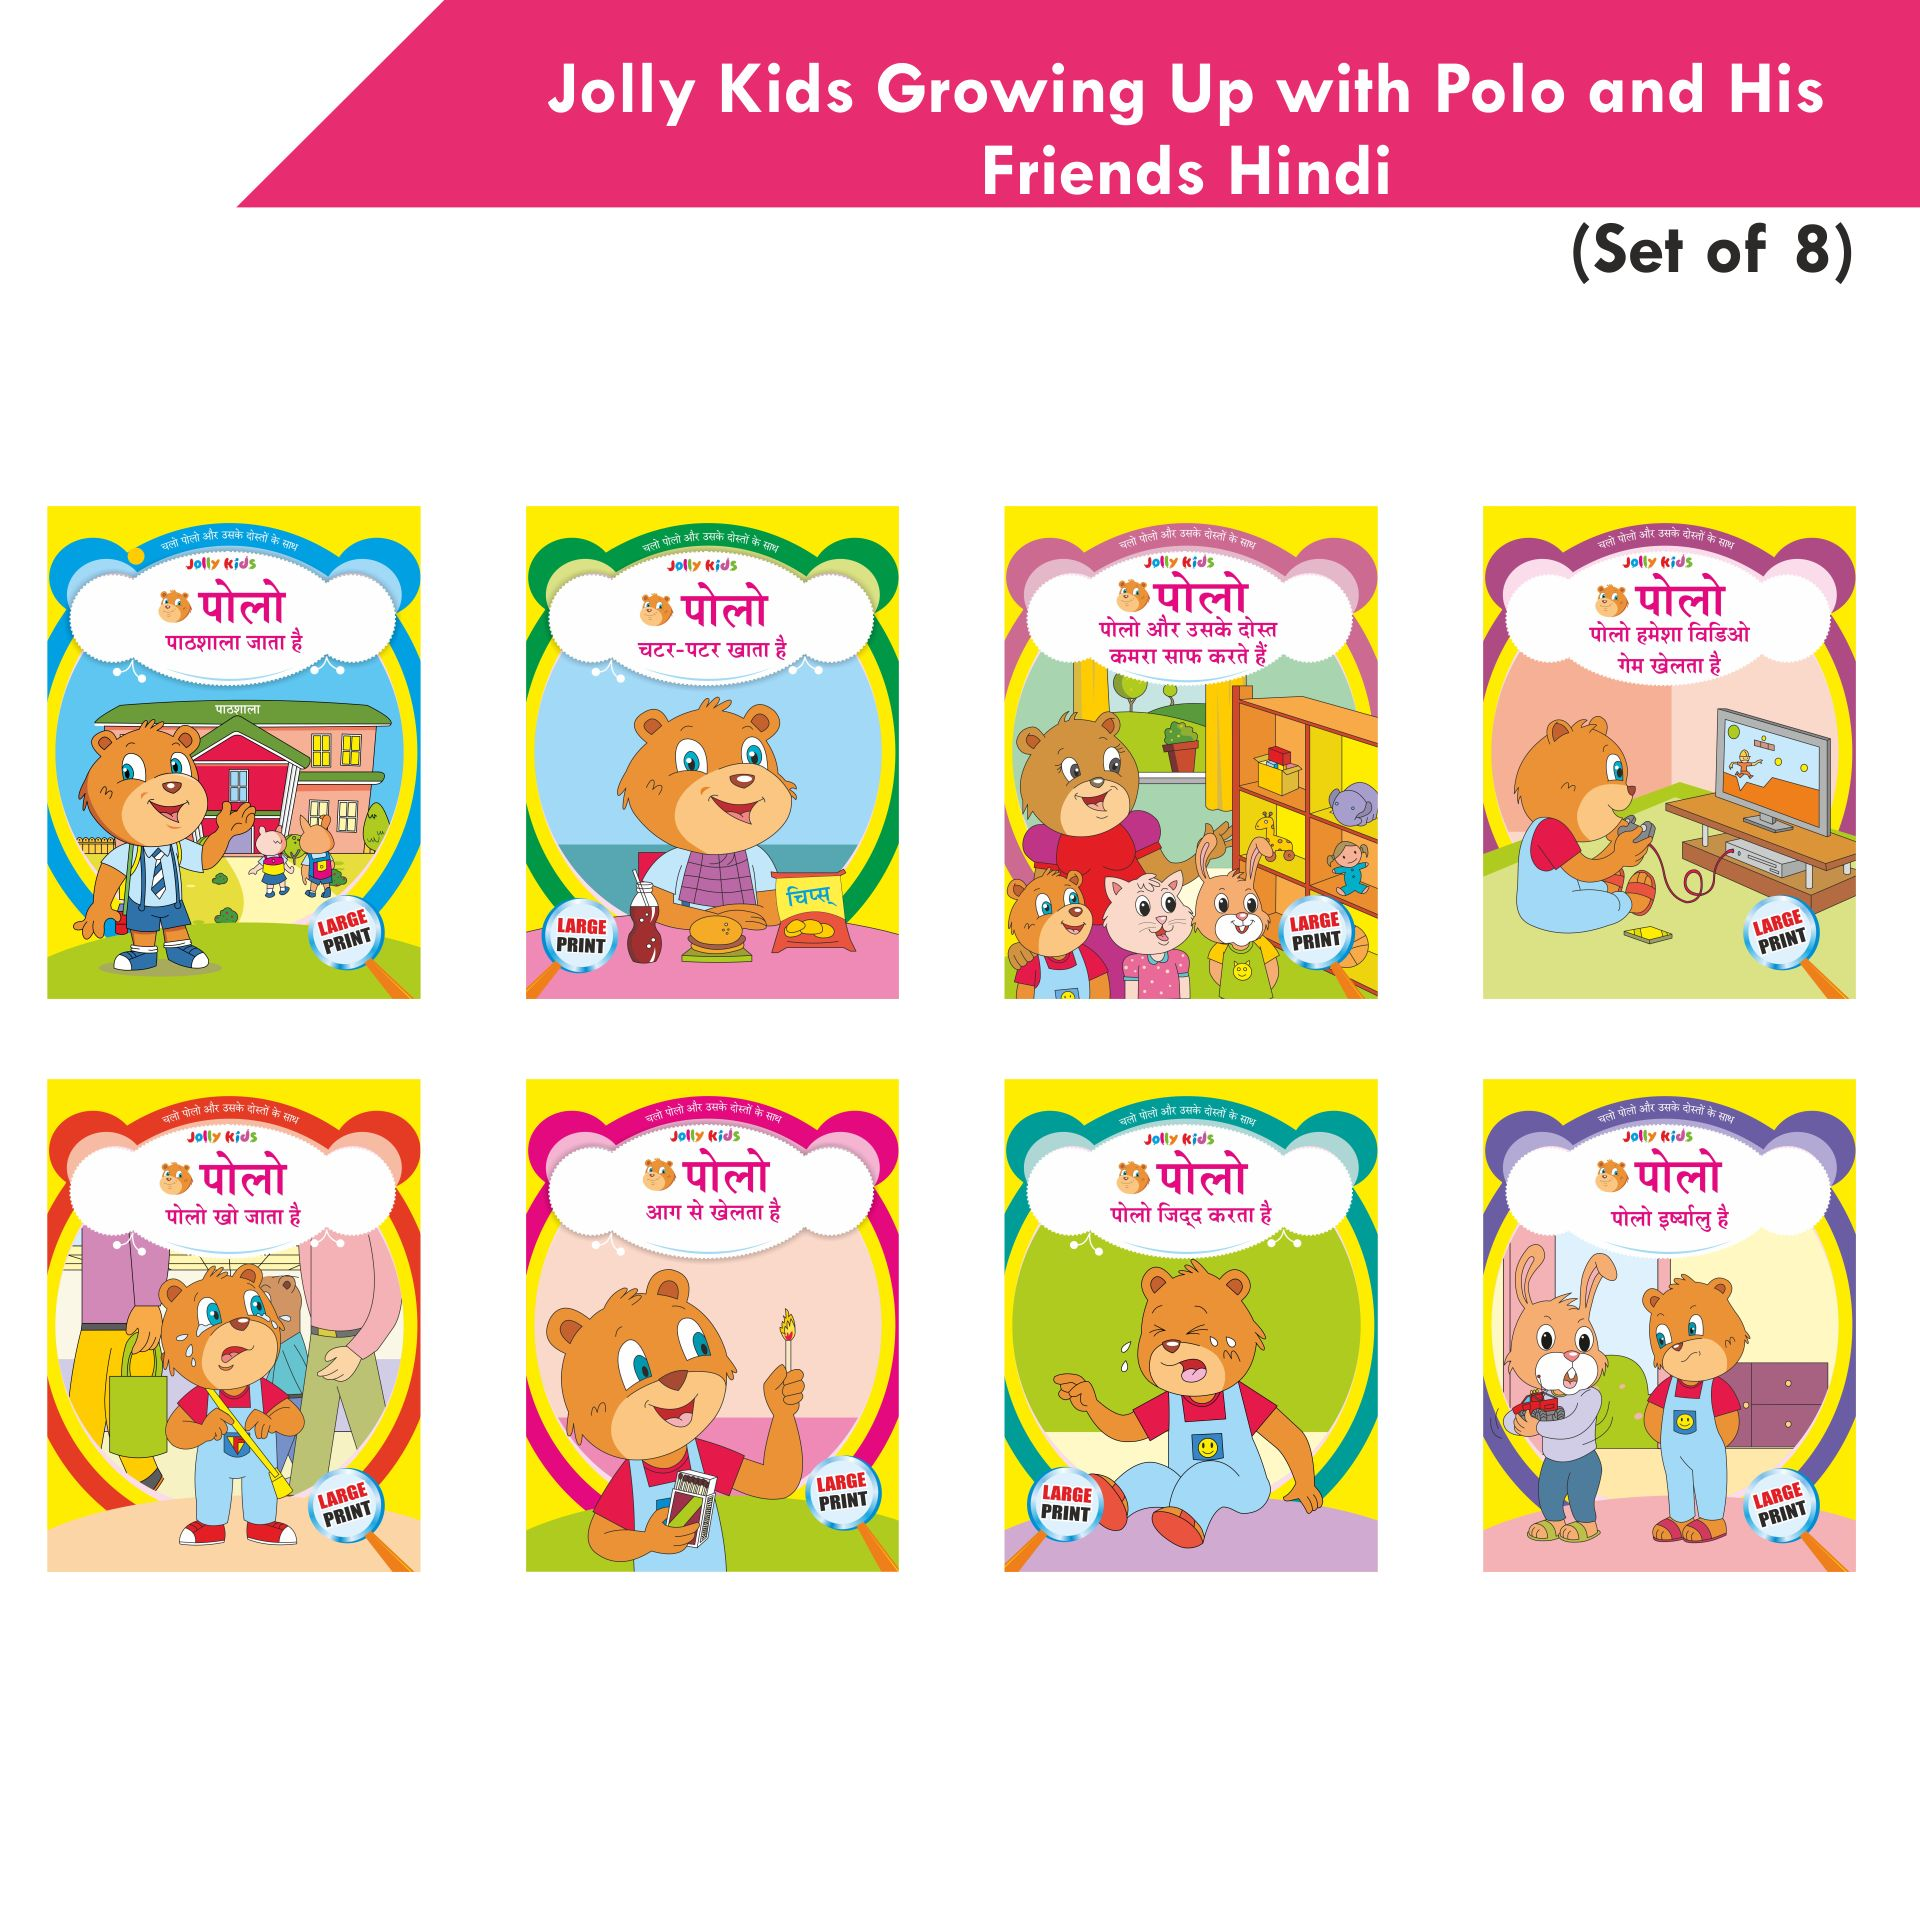 Jolly Kids Growing Up with Polo and His Friends Hindi Set of 8 1